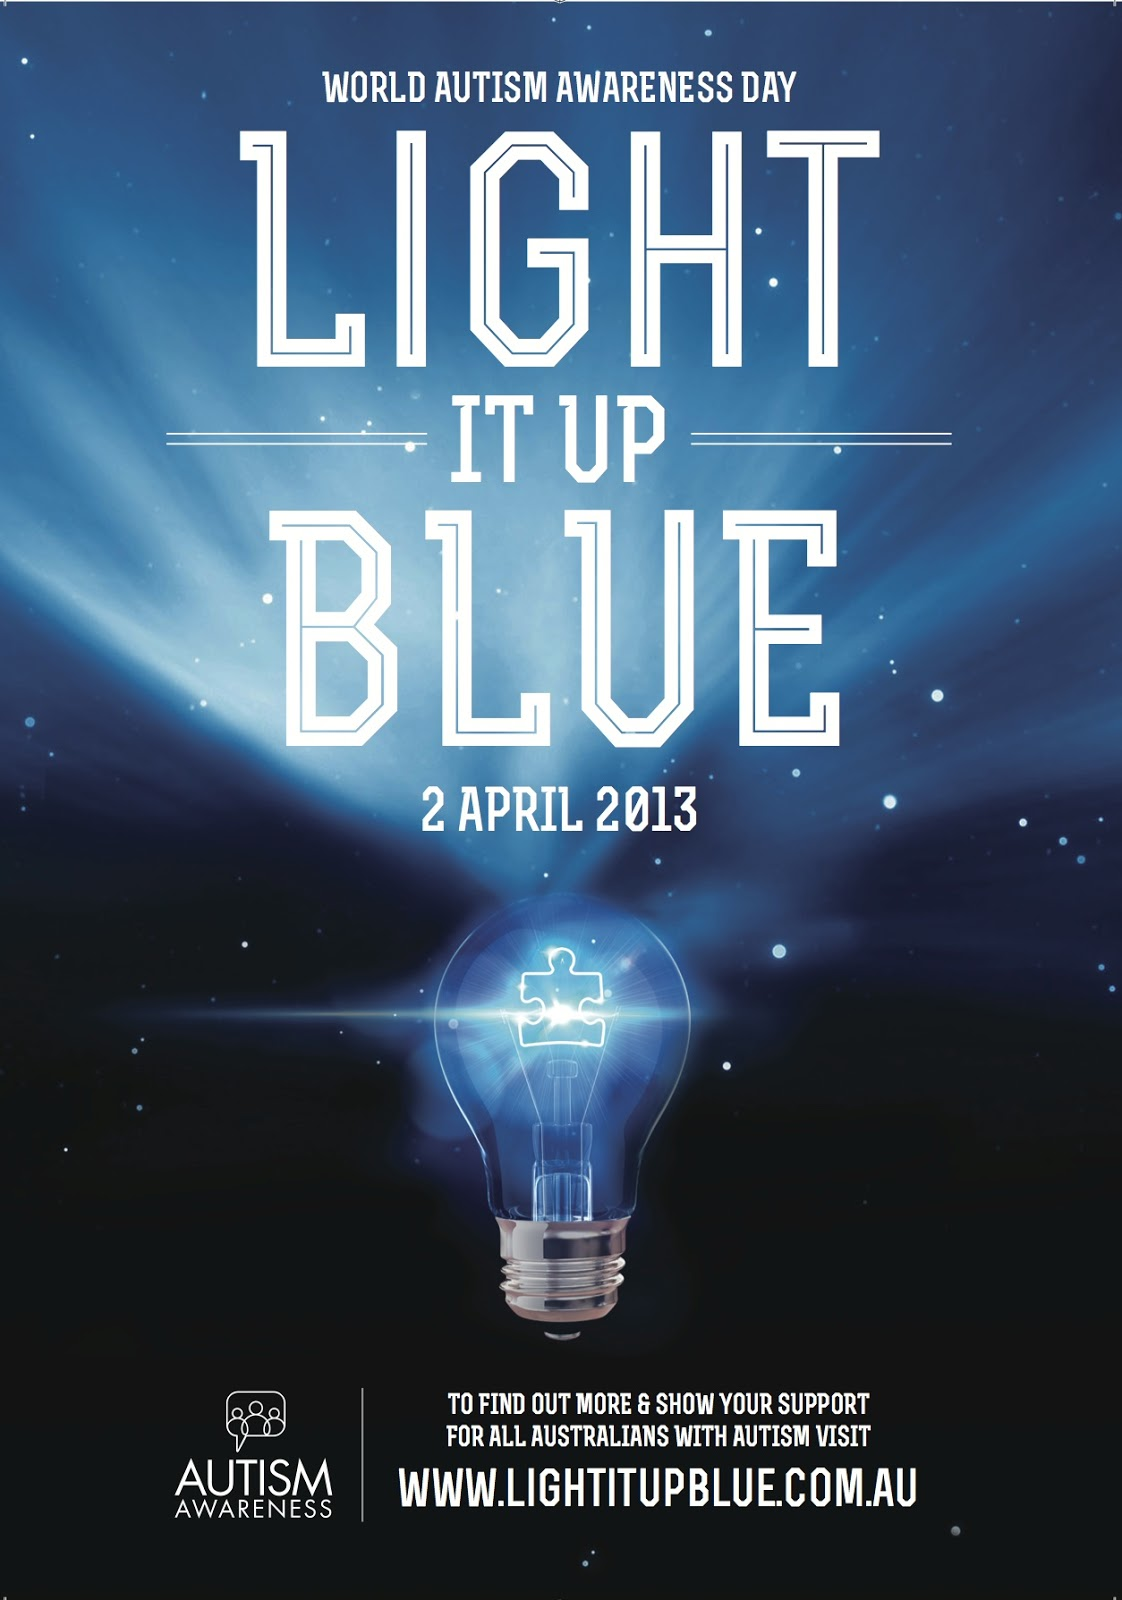 Light It Up Blue!  World Autism Day Is April 2nd. Buy A Blue Light Bulb For  Your Front Porch, Wear Blue To Work, And Have Your Kiddos Wear Blue To  School.